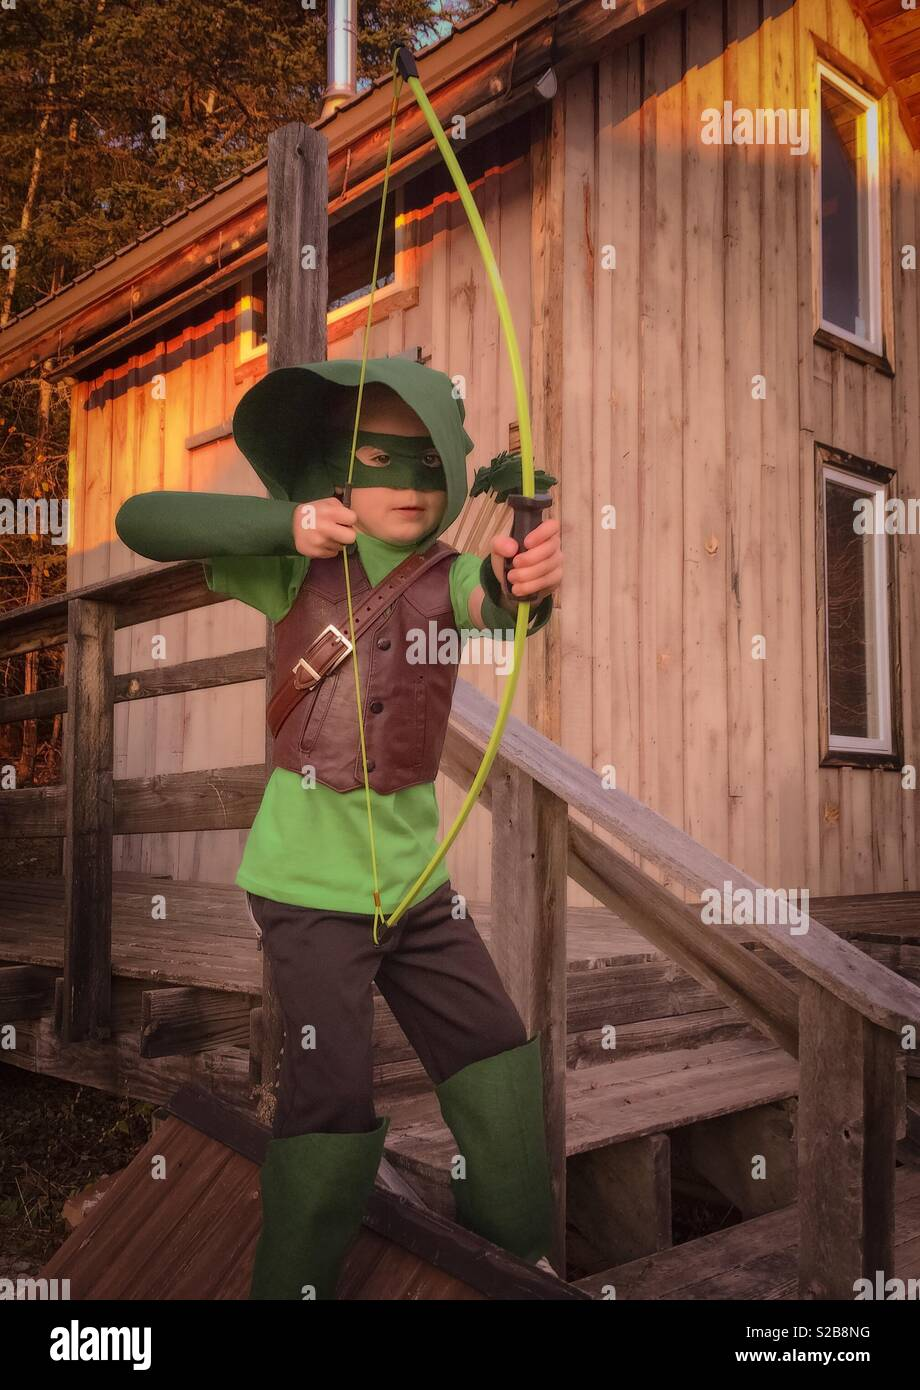 A Seven Year Old Boy Poses In His Green Arrow Costume On Halloween Stock Photo Alamy